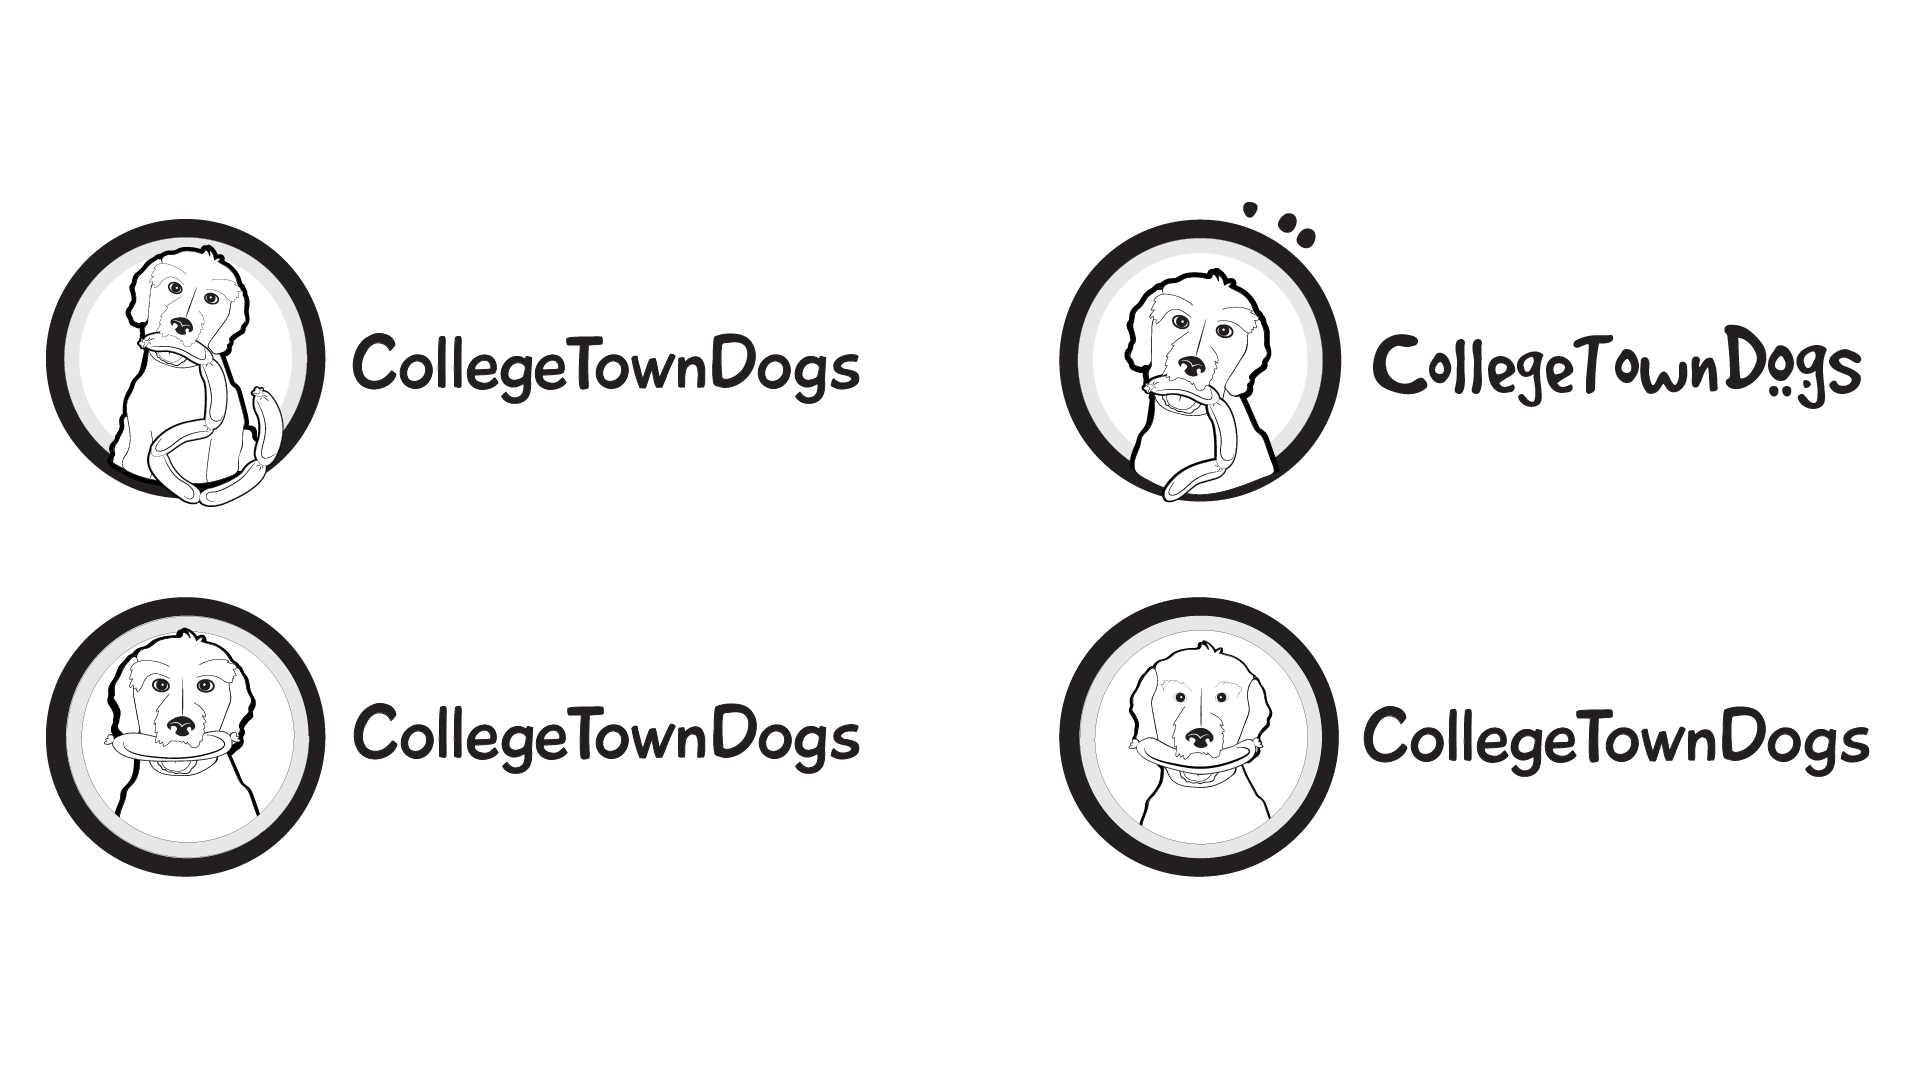 CollegeTownDogs_LogoSketches-Slide3.png